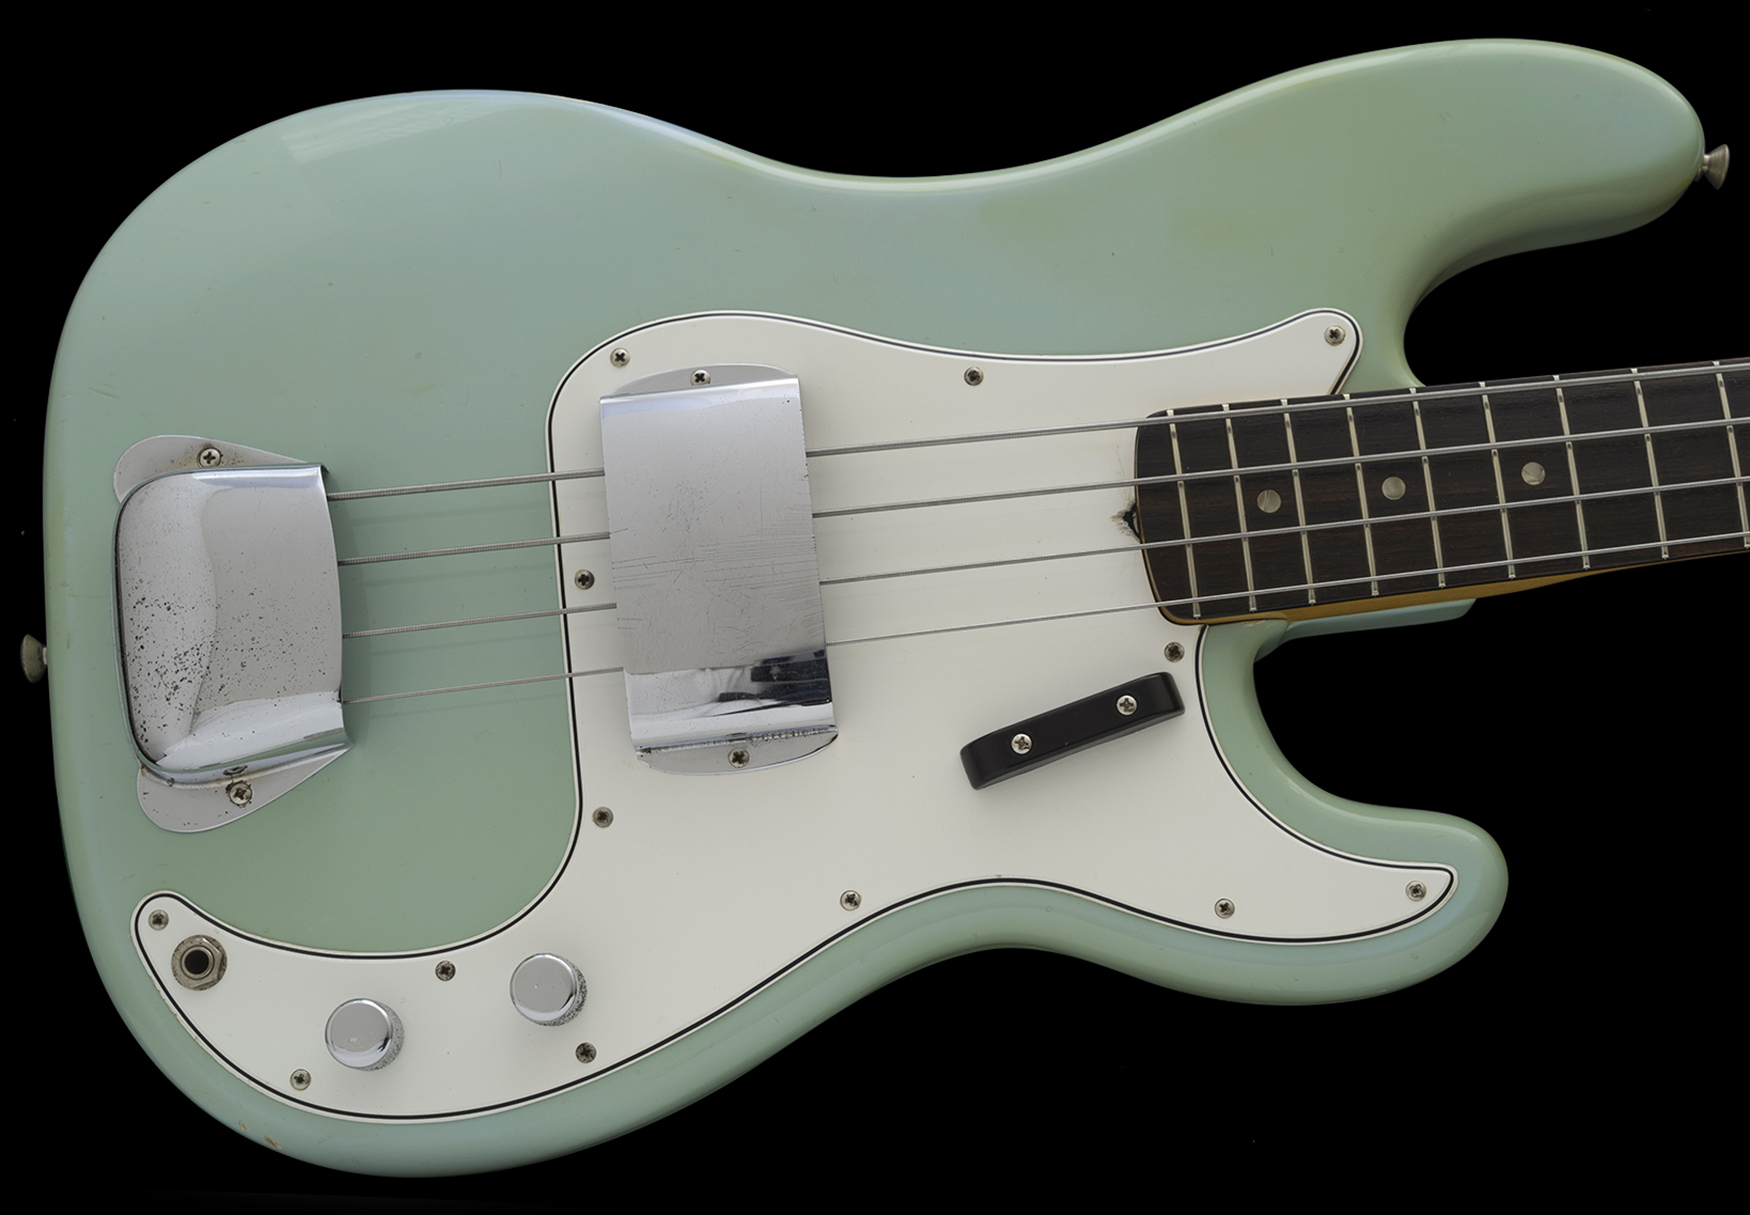 1966 Precision Bass, SONIC BLUE Duco finish, Very Nice